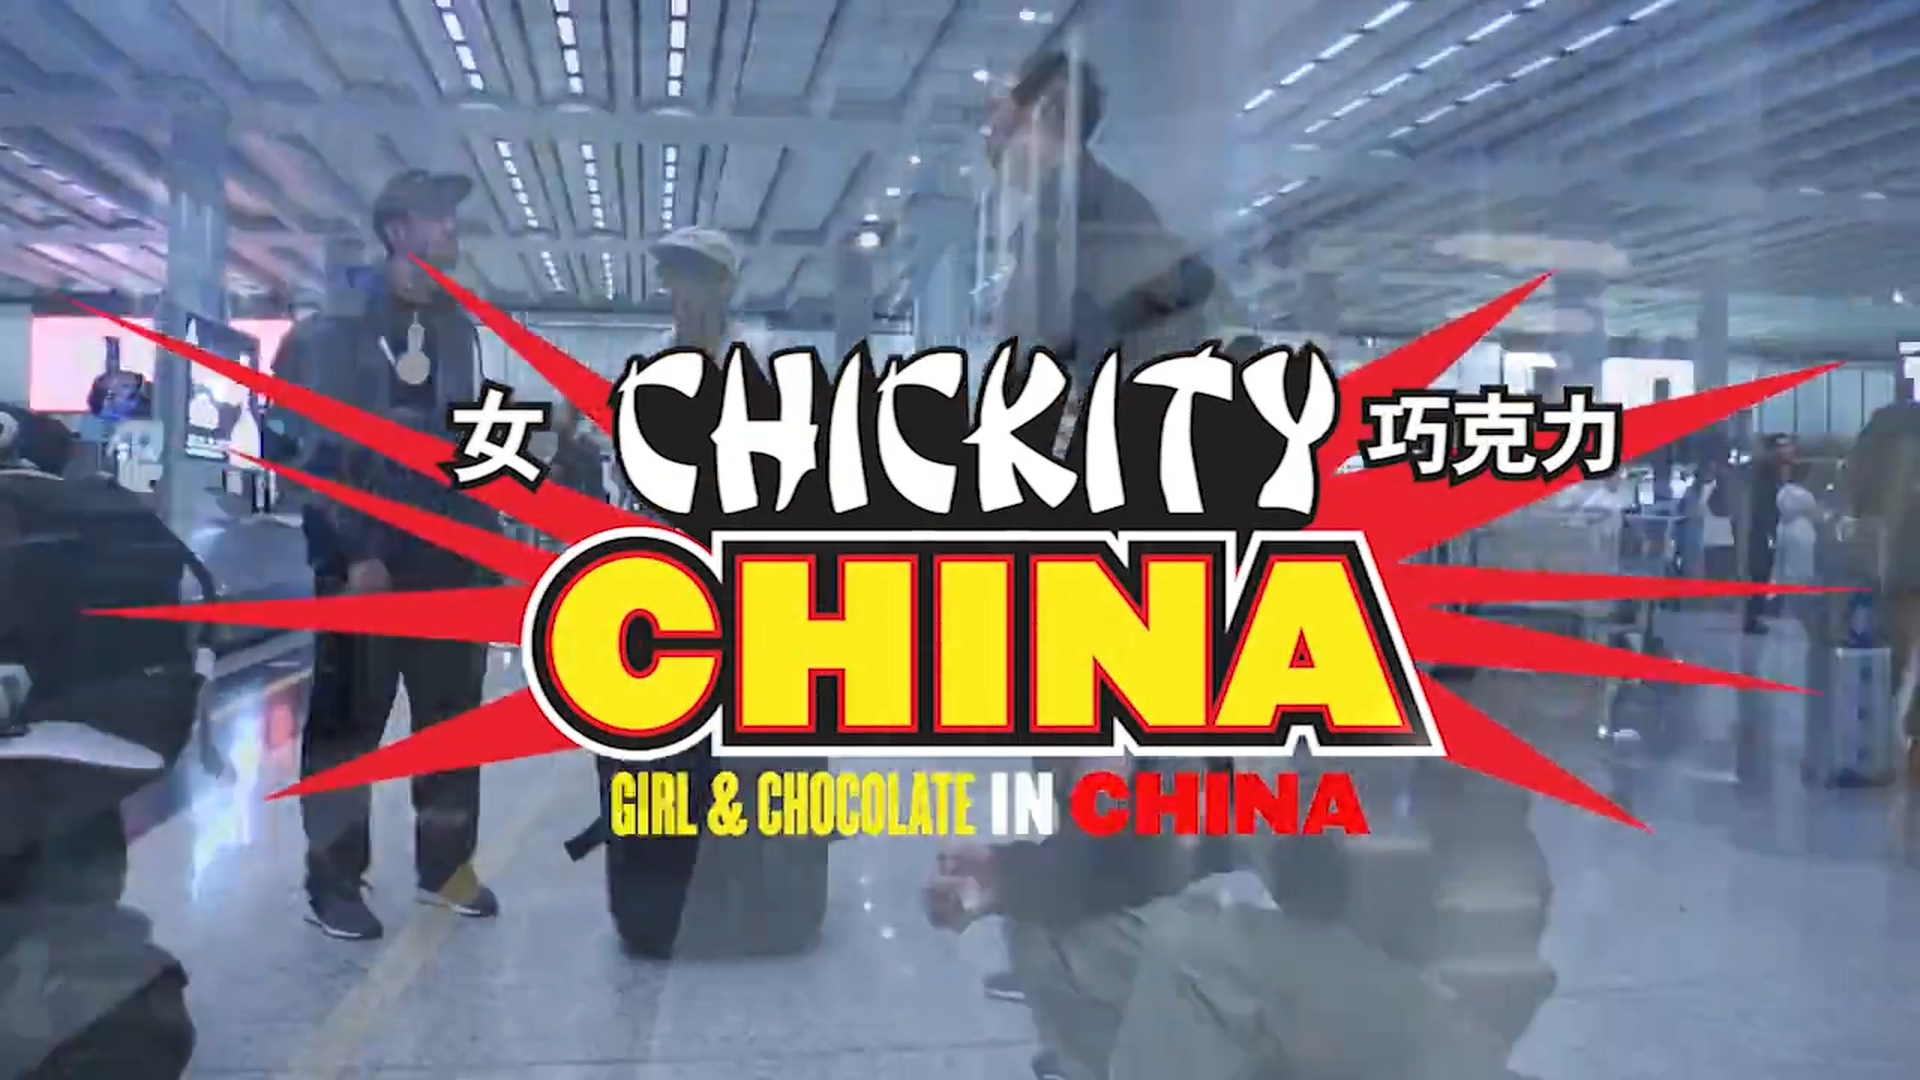 Thrasher Magazine - Girl & Chocolates Chickity China Video[720, Mp4].mp4_20180410_215503.135